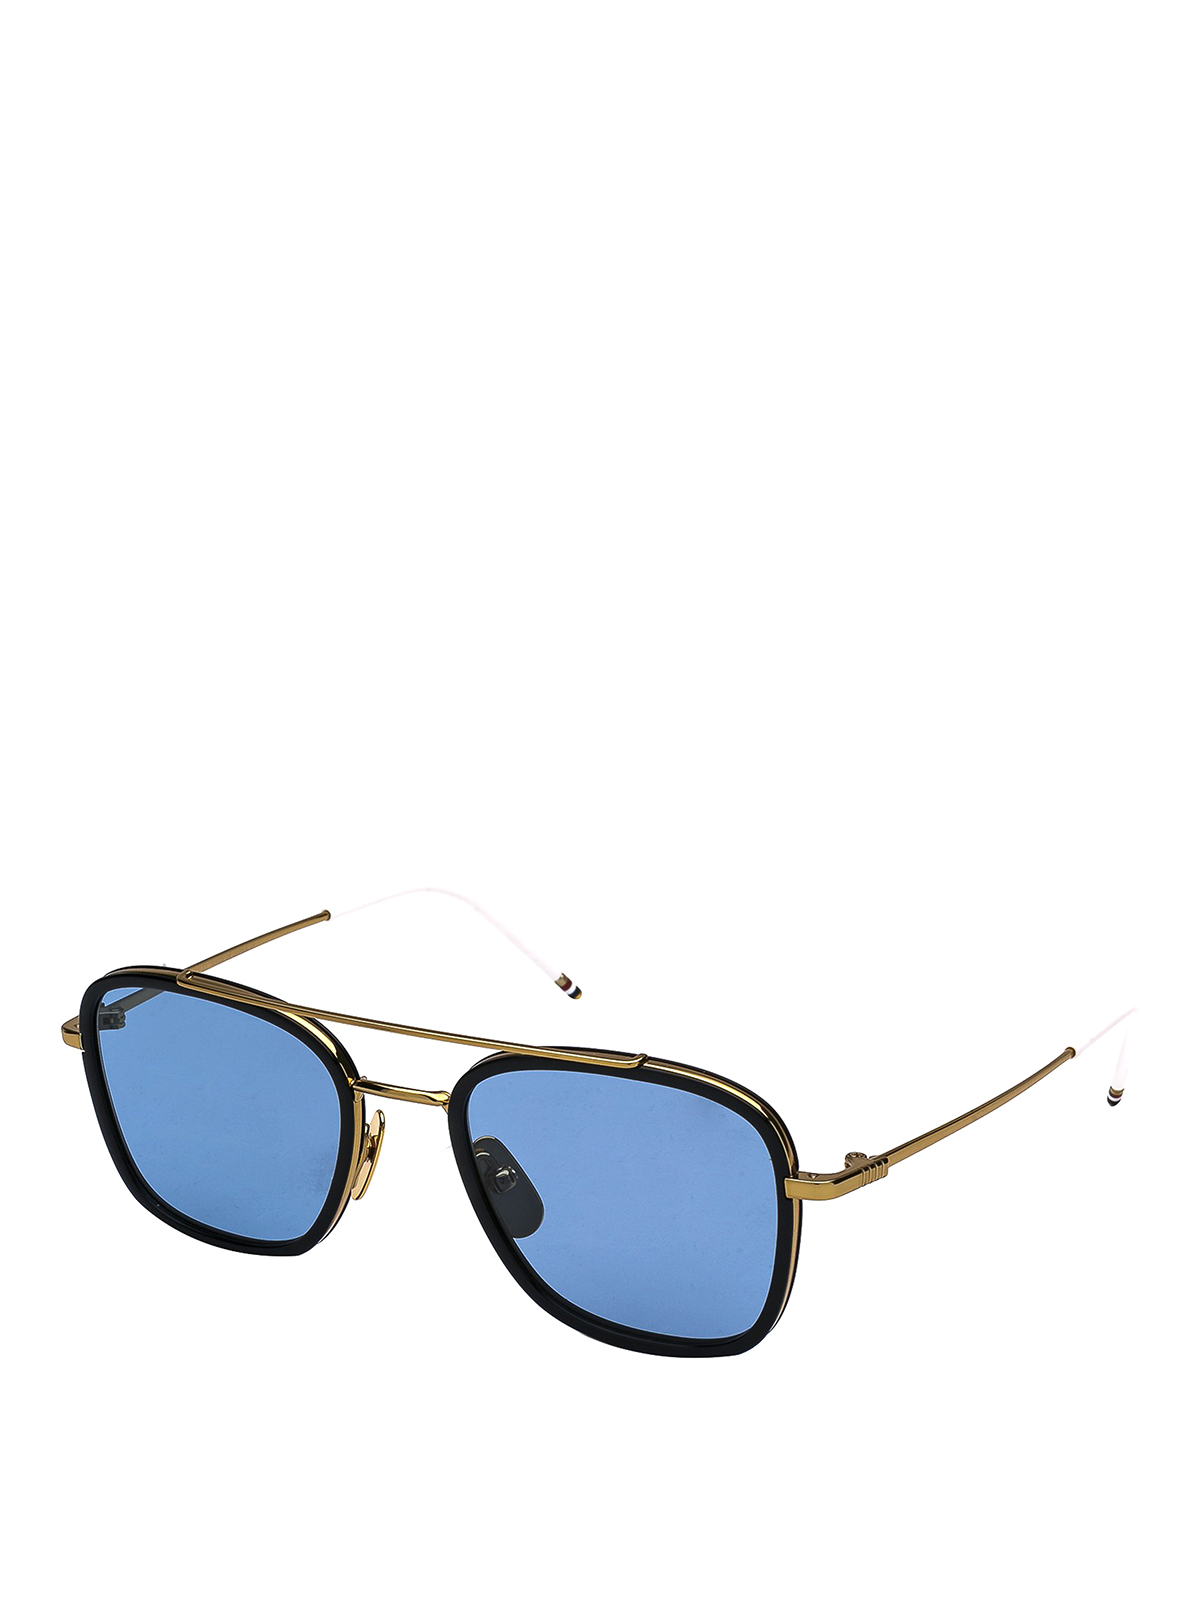 Thom Browne Black And Gold Squared Sunglasses